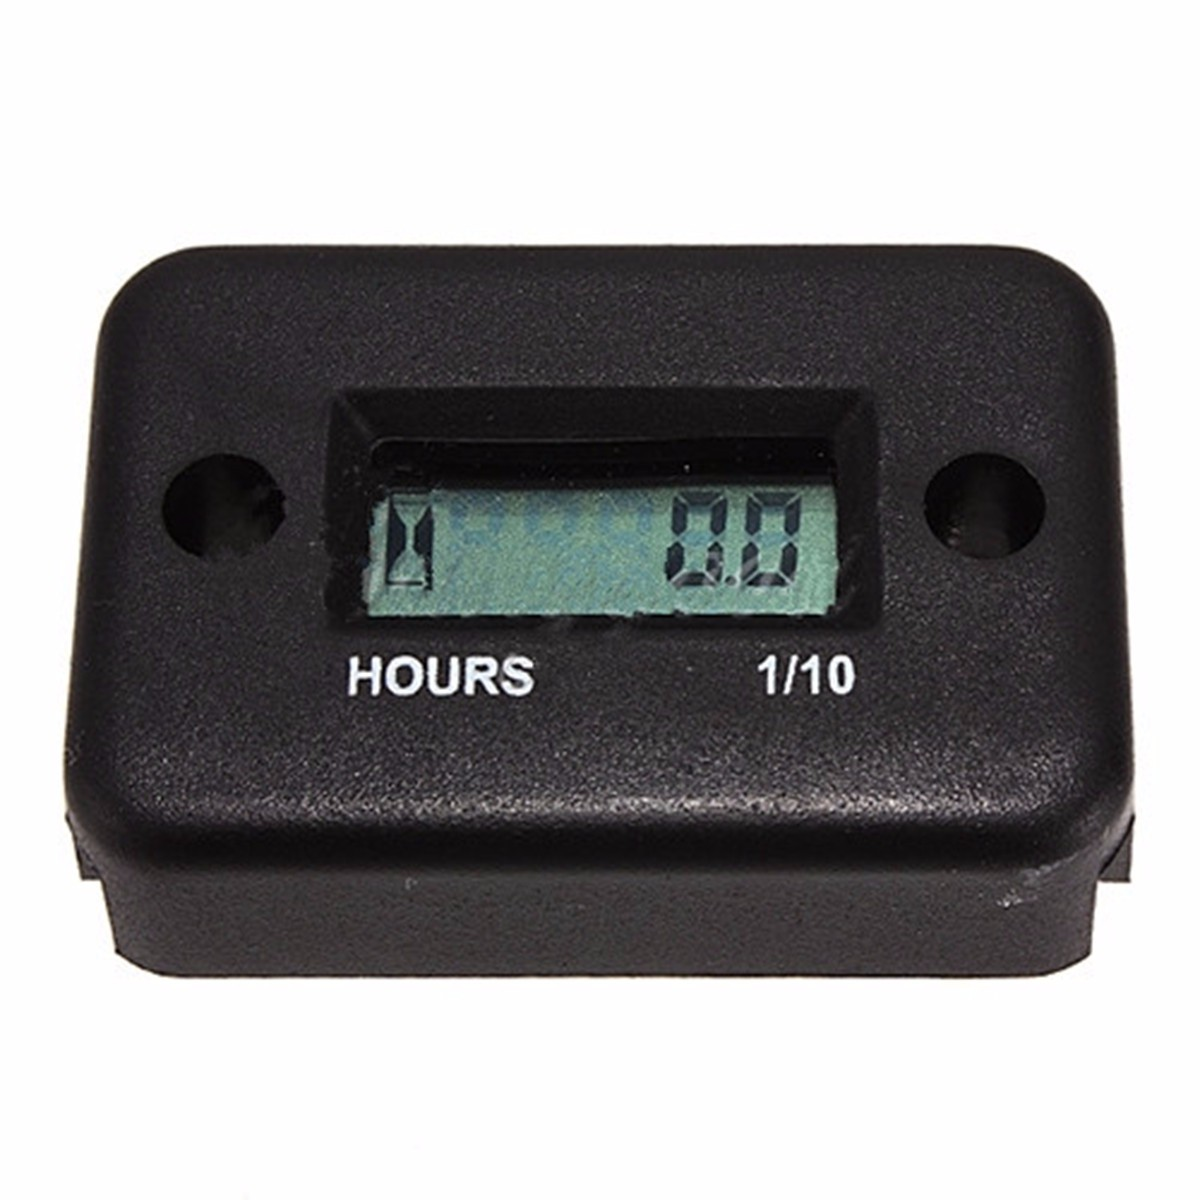 Black Motorcycle ATV Snowmobile Boat Ski Waterproof Hour Meter